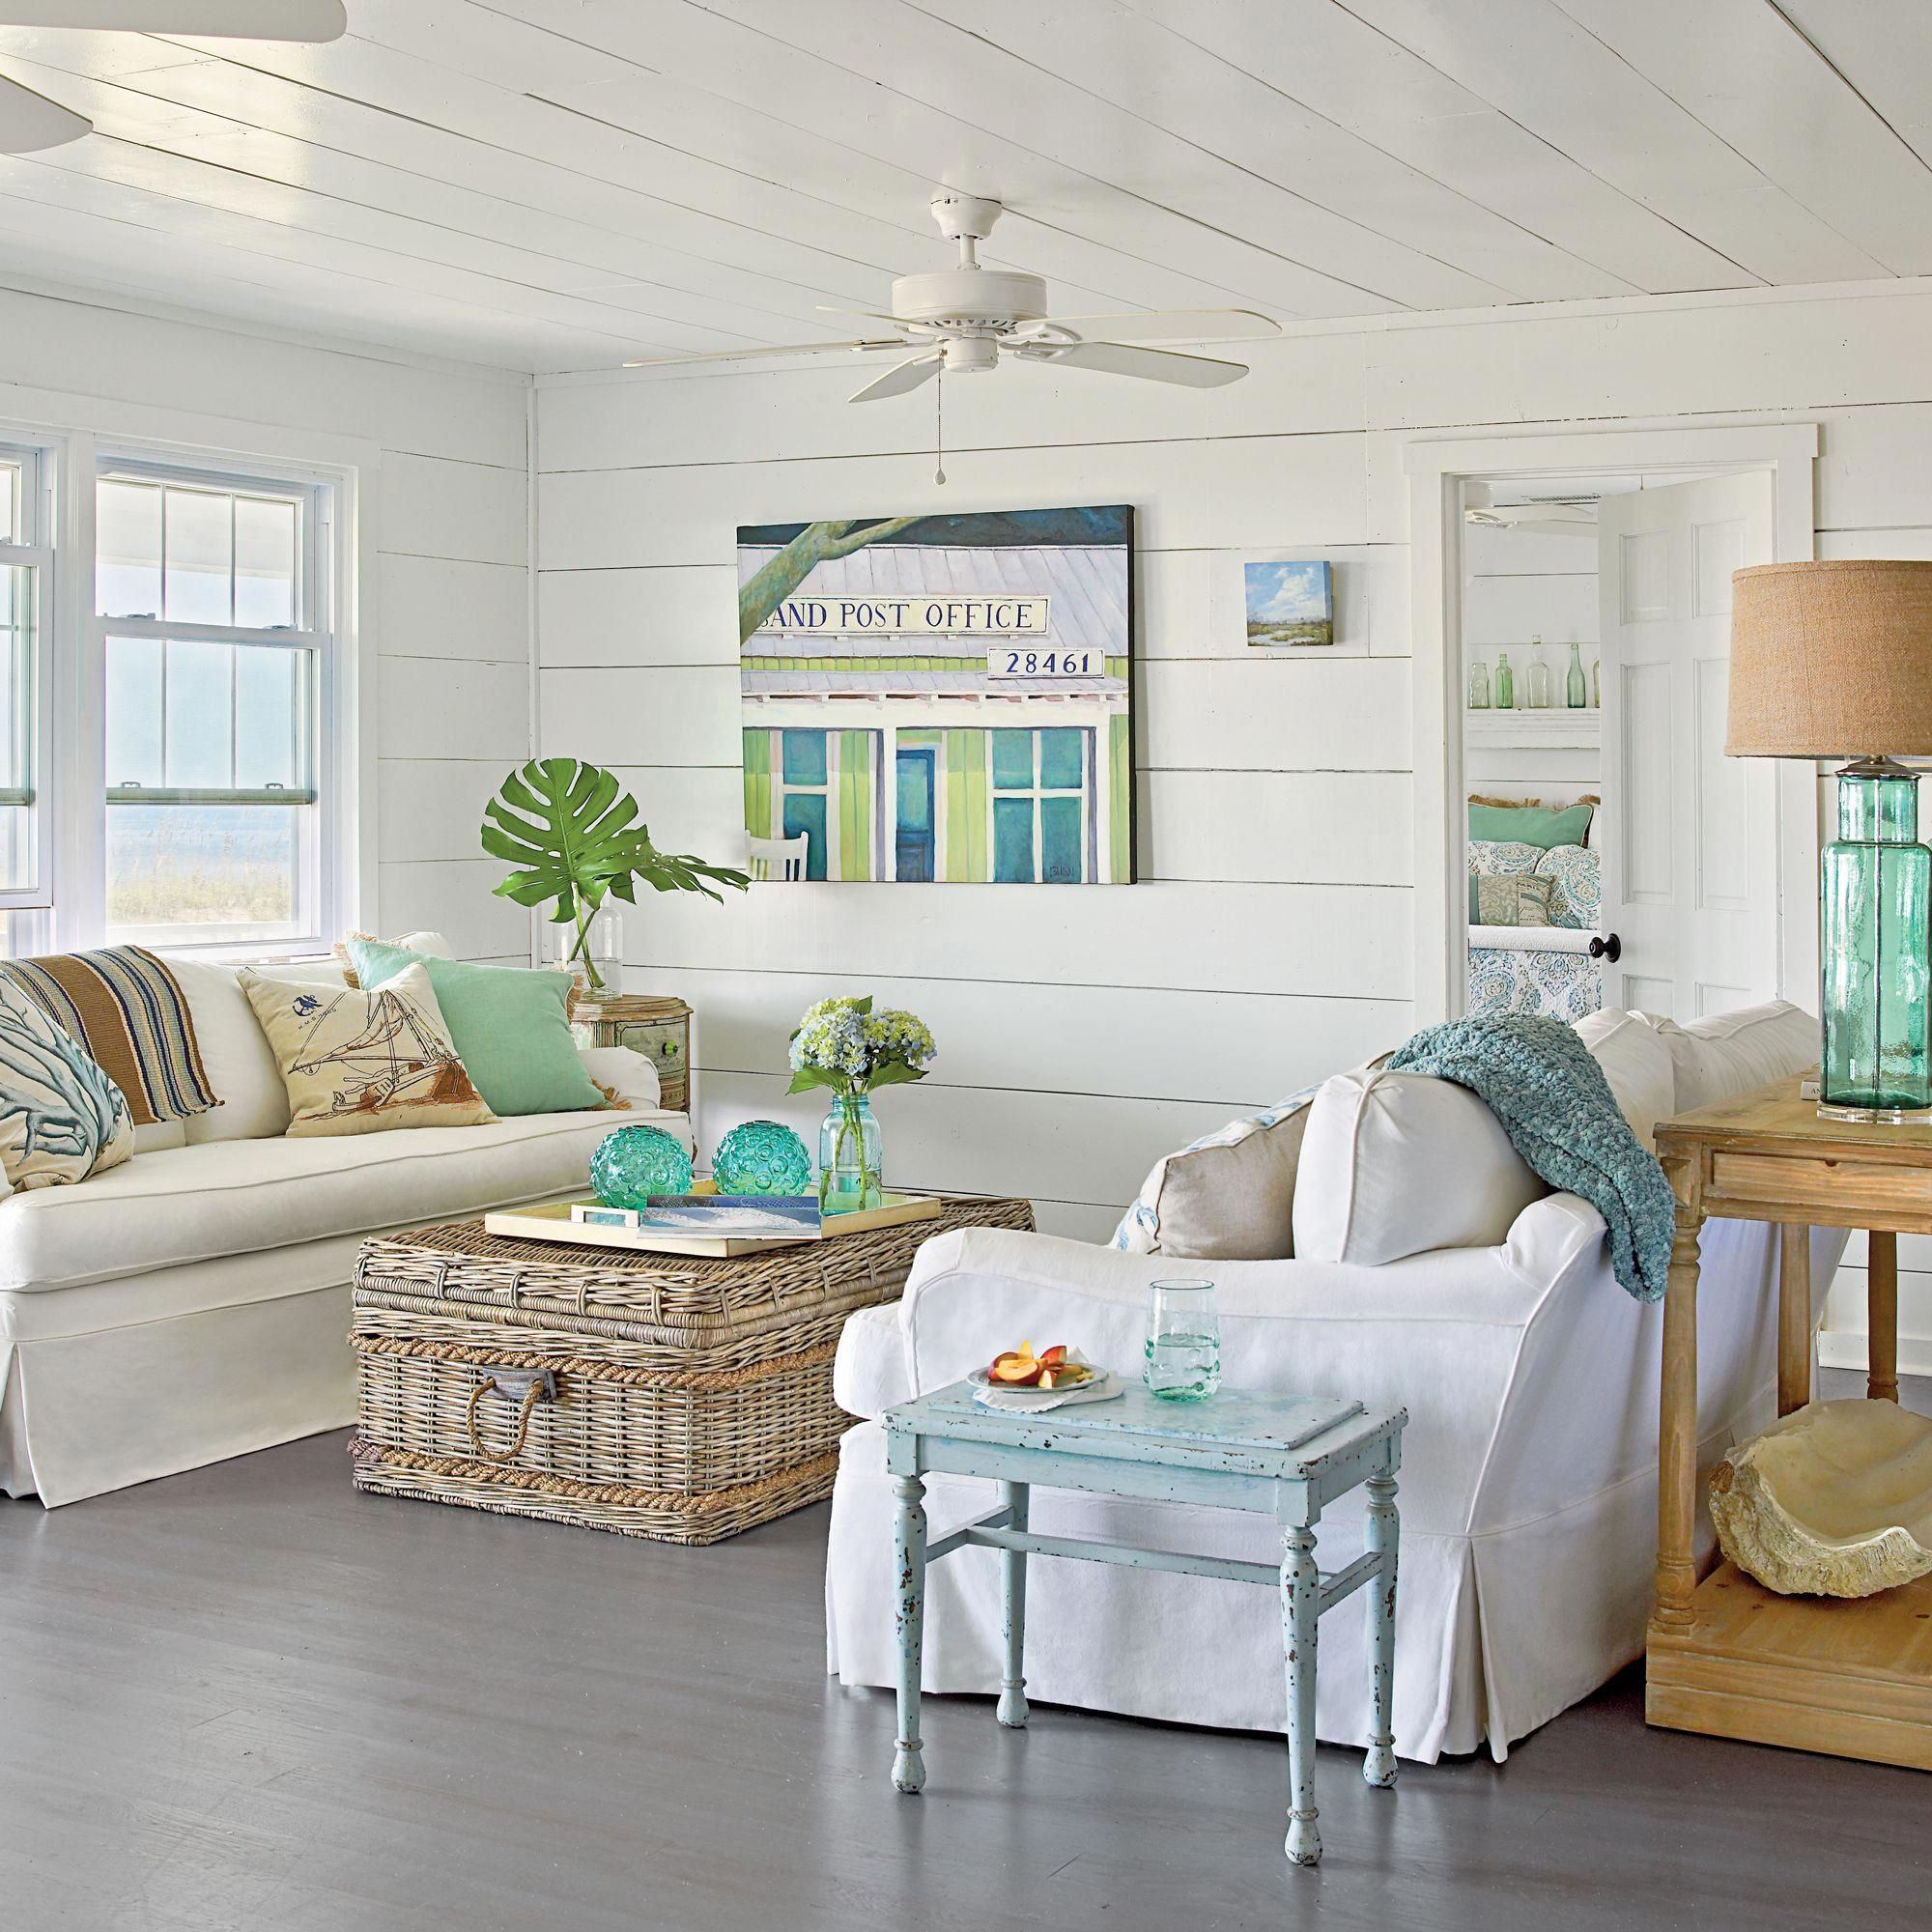 Home Decorators Collection Drapery Rod Coastal Decorating Living Room Beach House Living Room Cottage Style Living Room